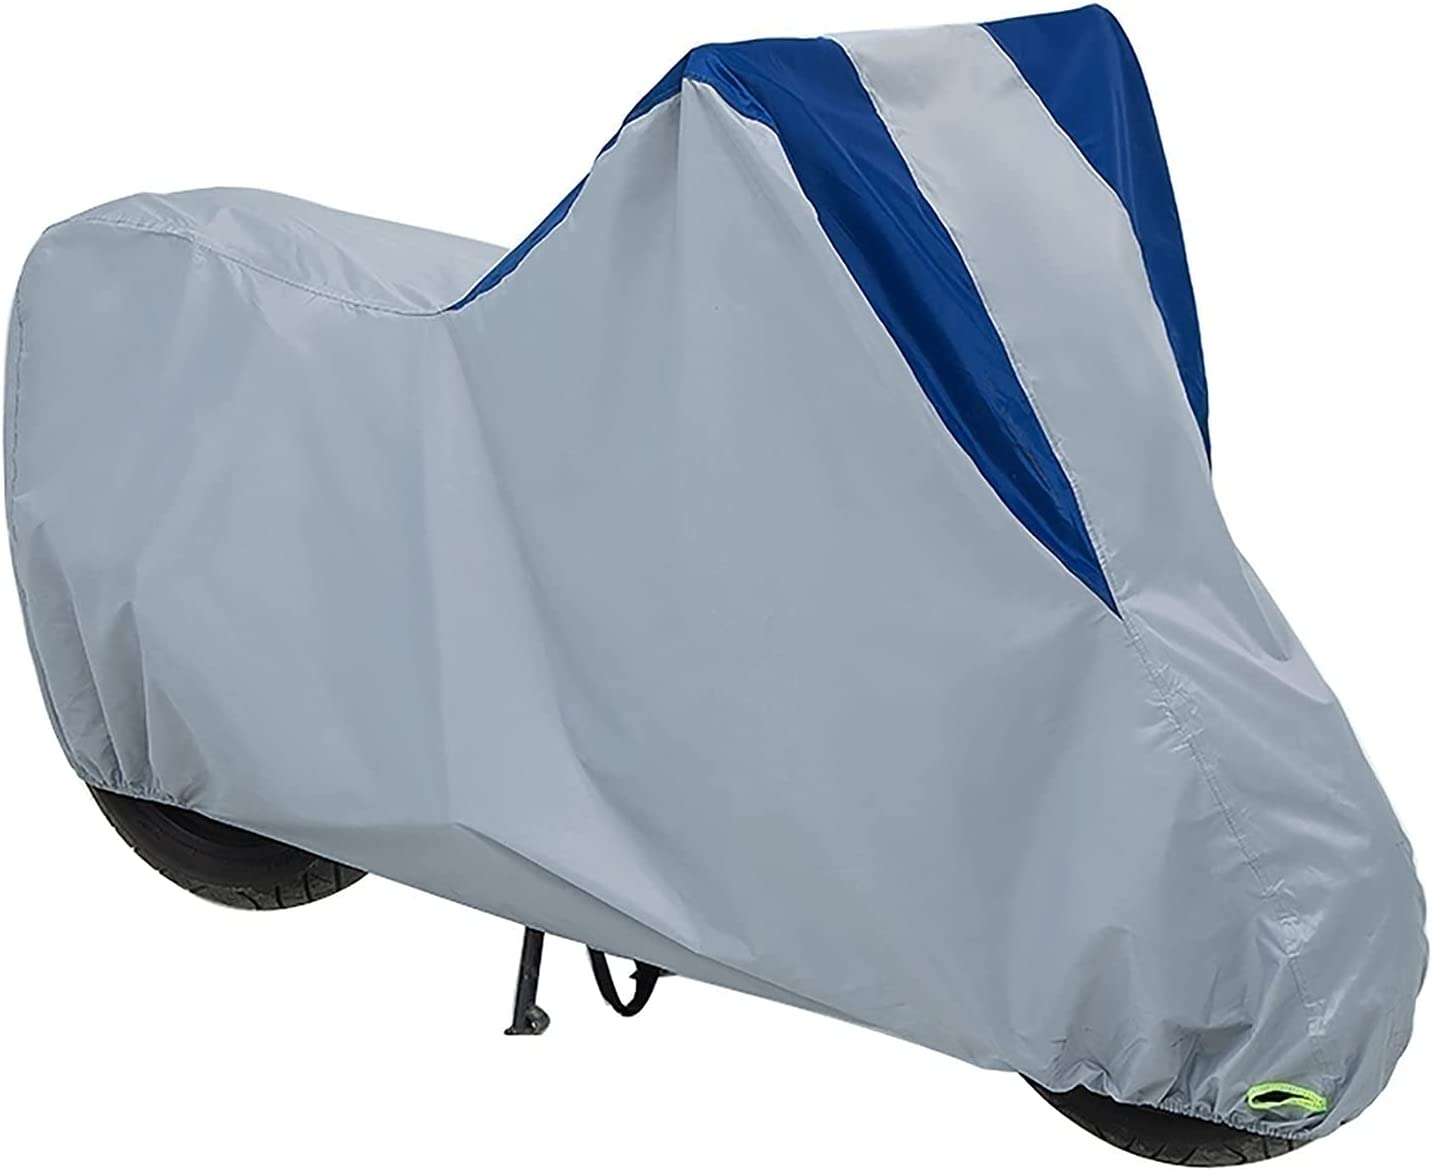 HEQCG Powersports Vehicle Limited Special Price Covers Compatible Max 83% OFF Cove Motorcycle with